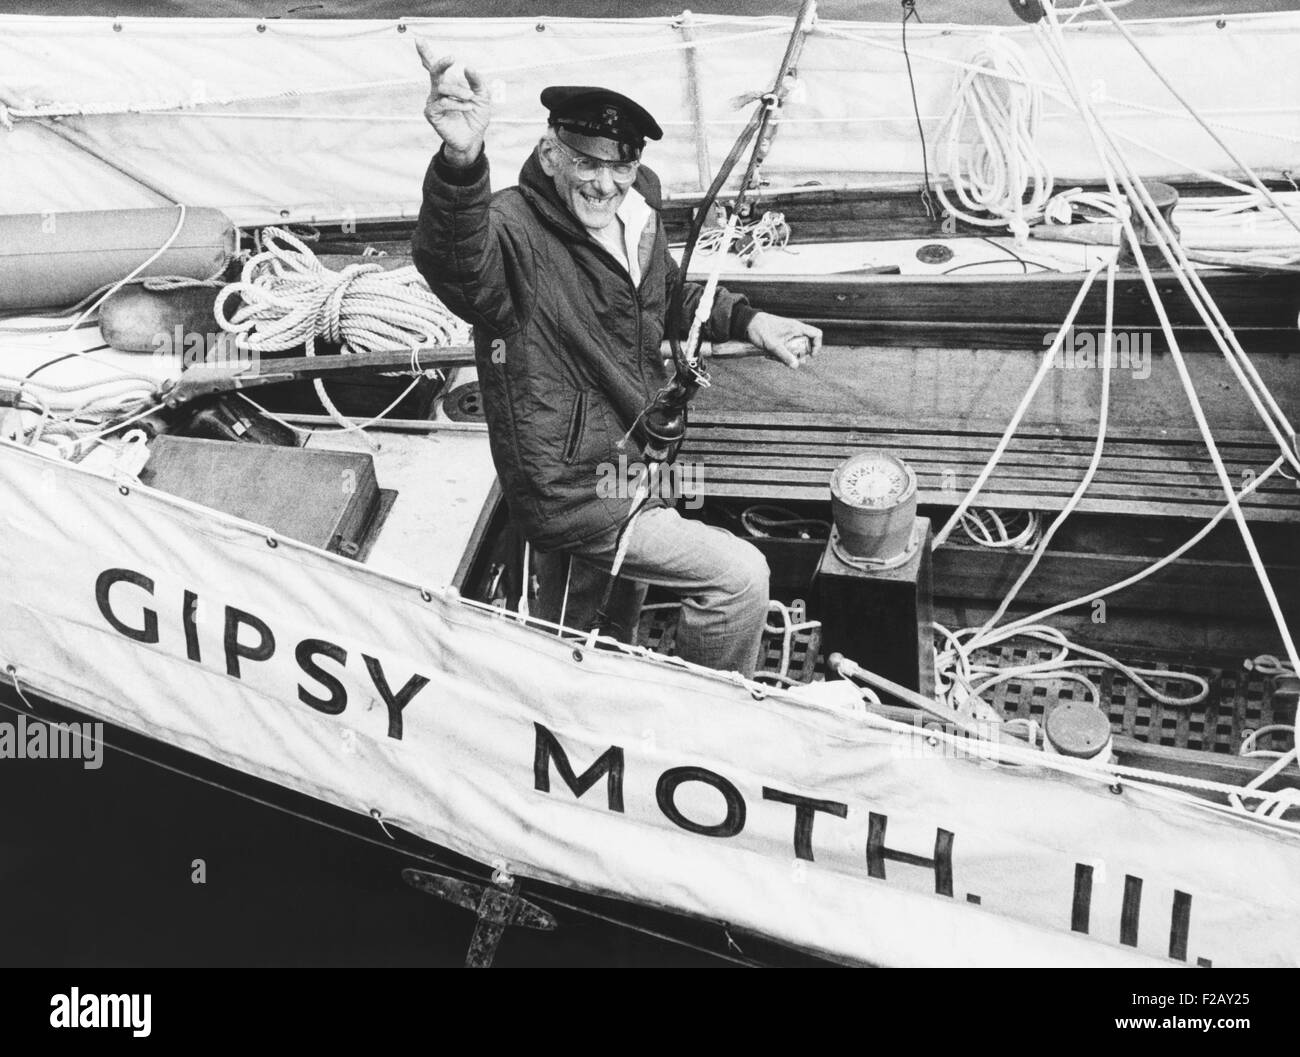 Sir Francis Chichester, long-distance yachtsman on the Gipsy Moth III in New York Harbor. July 5, 1962. Chichester - Stock Image